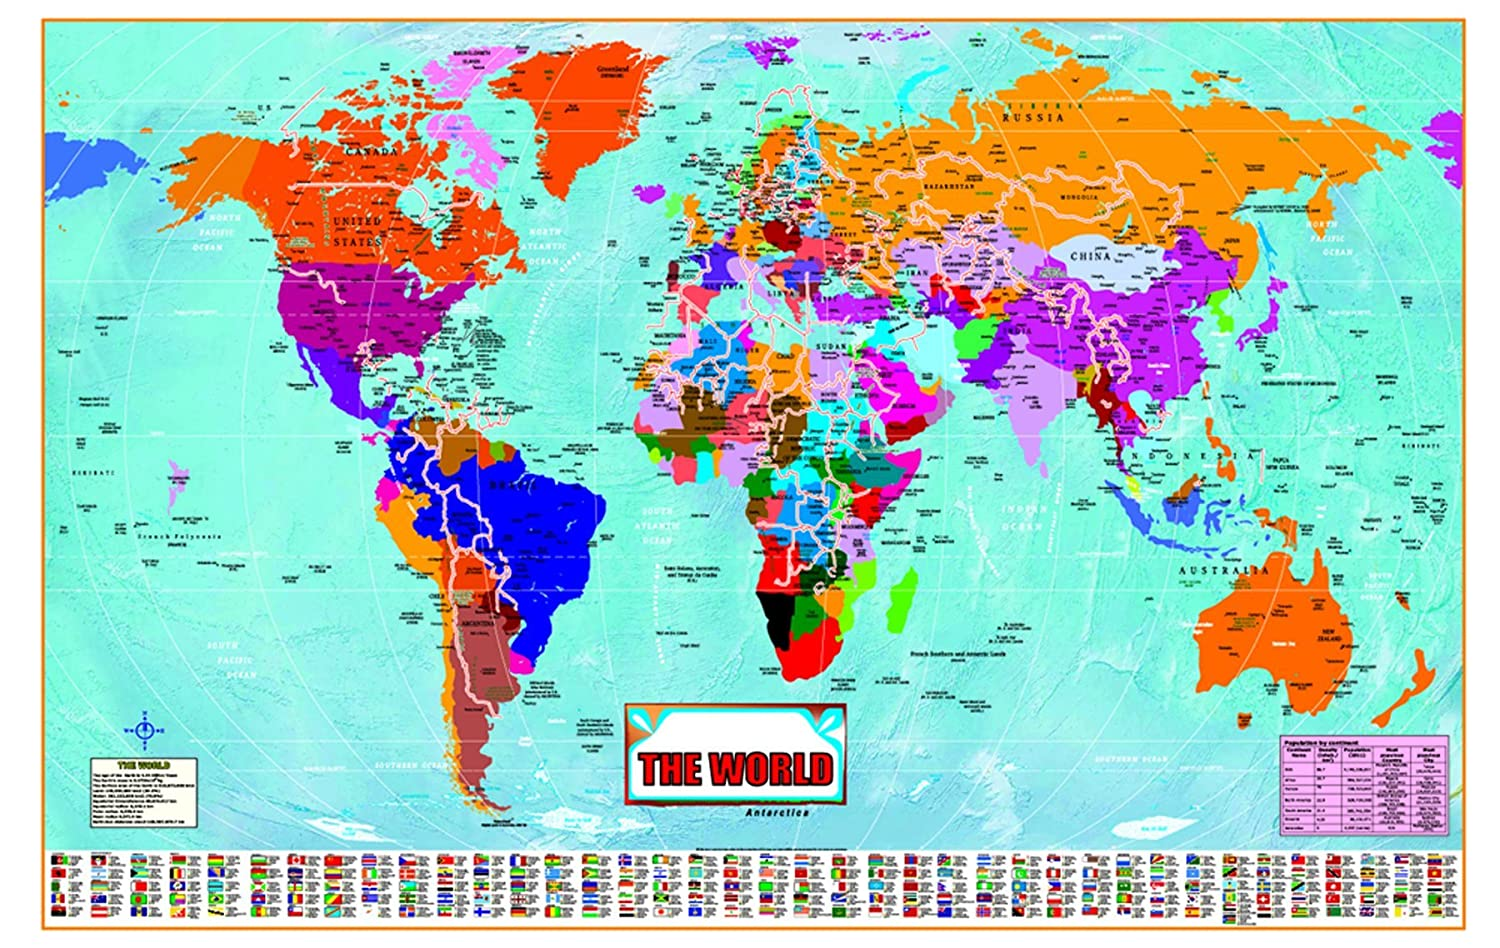 LARGE huge laminated WORLD MAP Poster Wall Chart Latest Ed New Sealed 36X24  inches with country flags